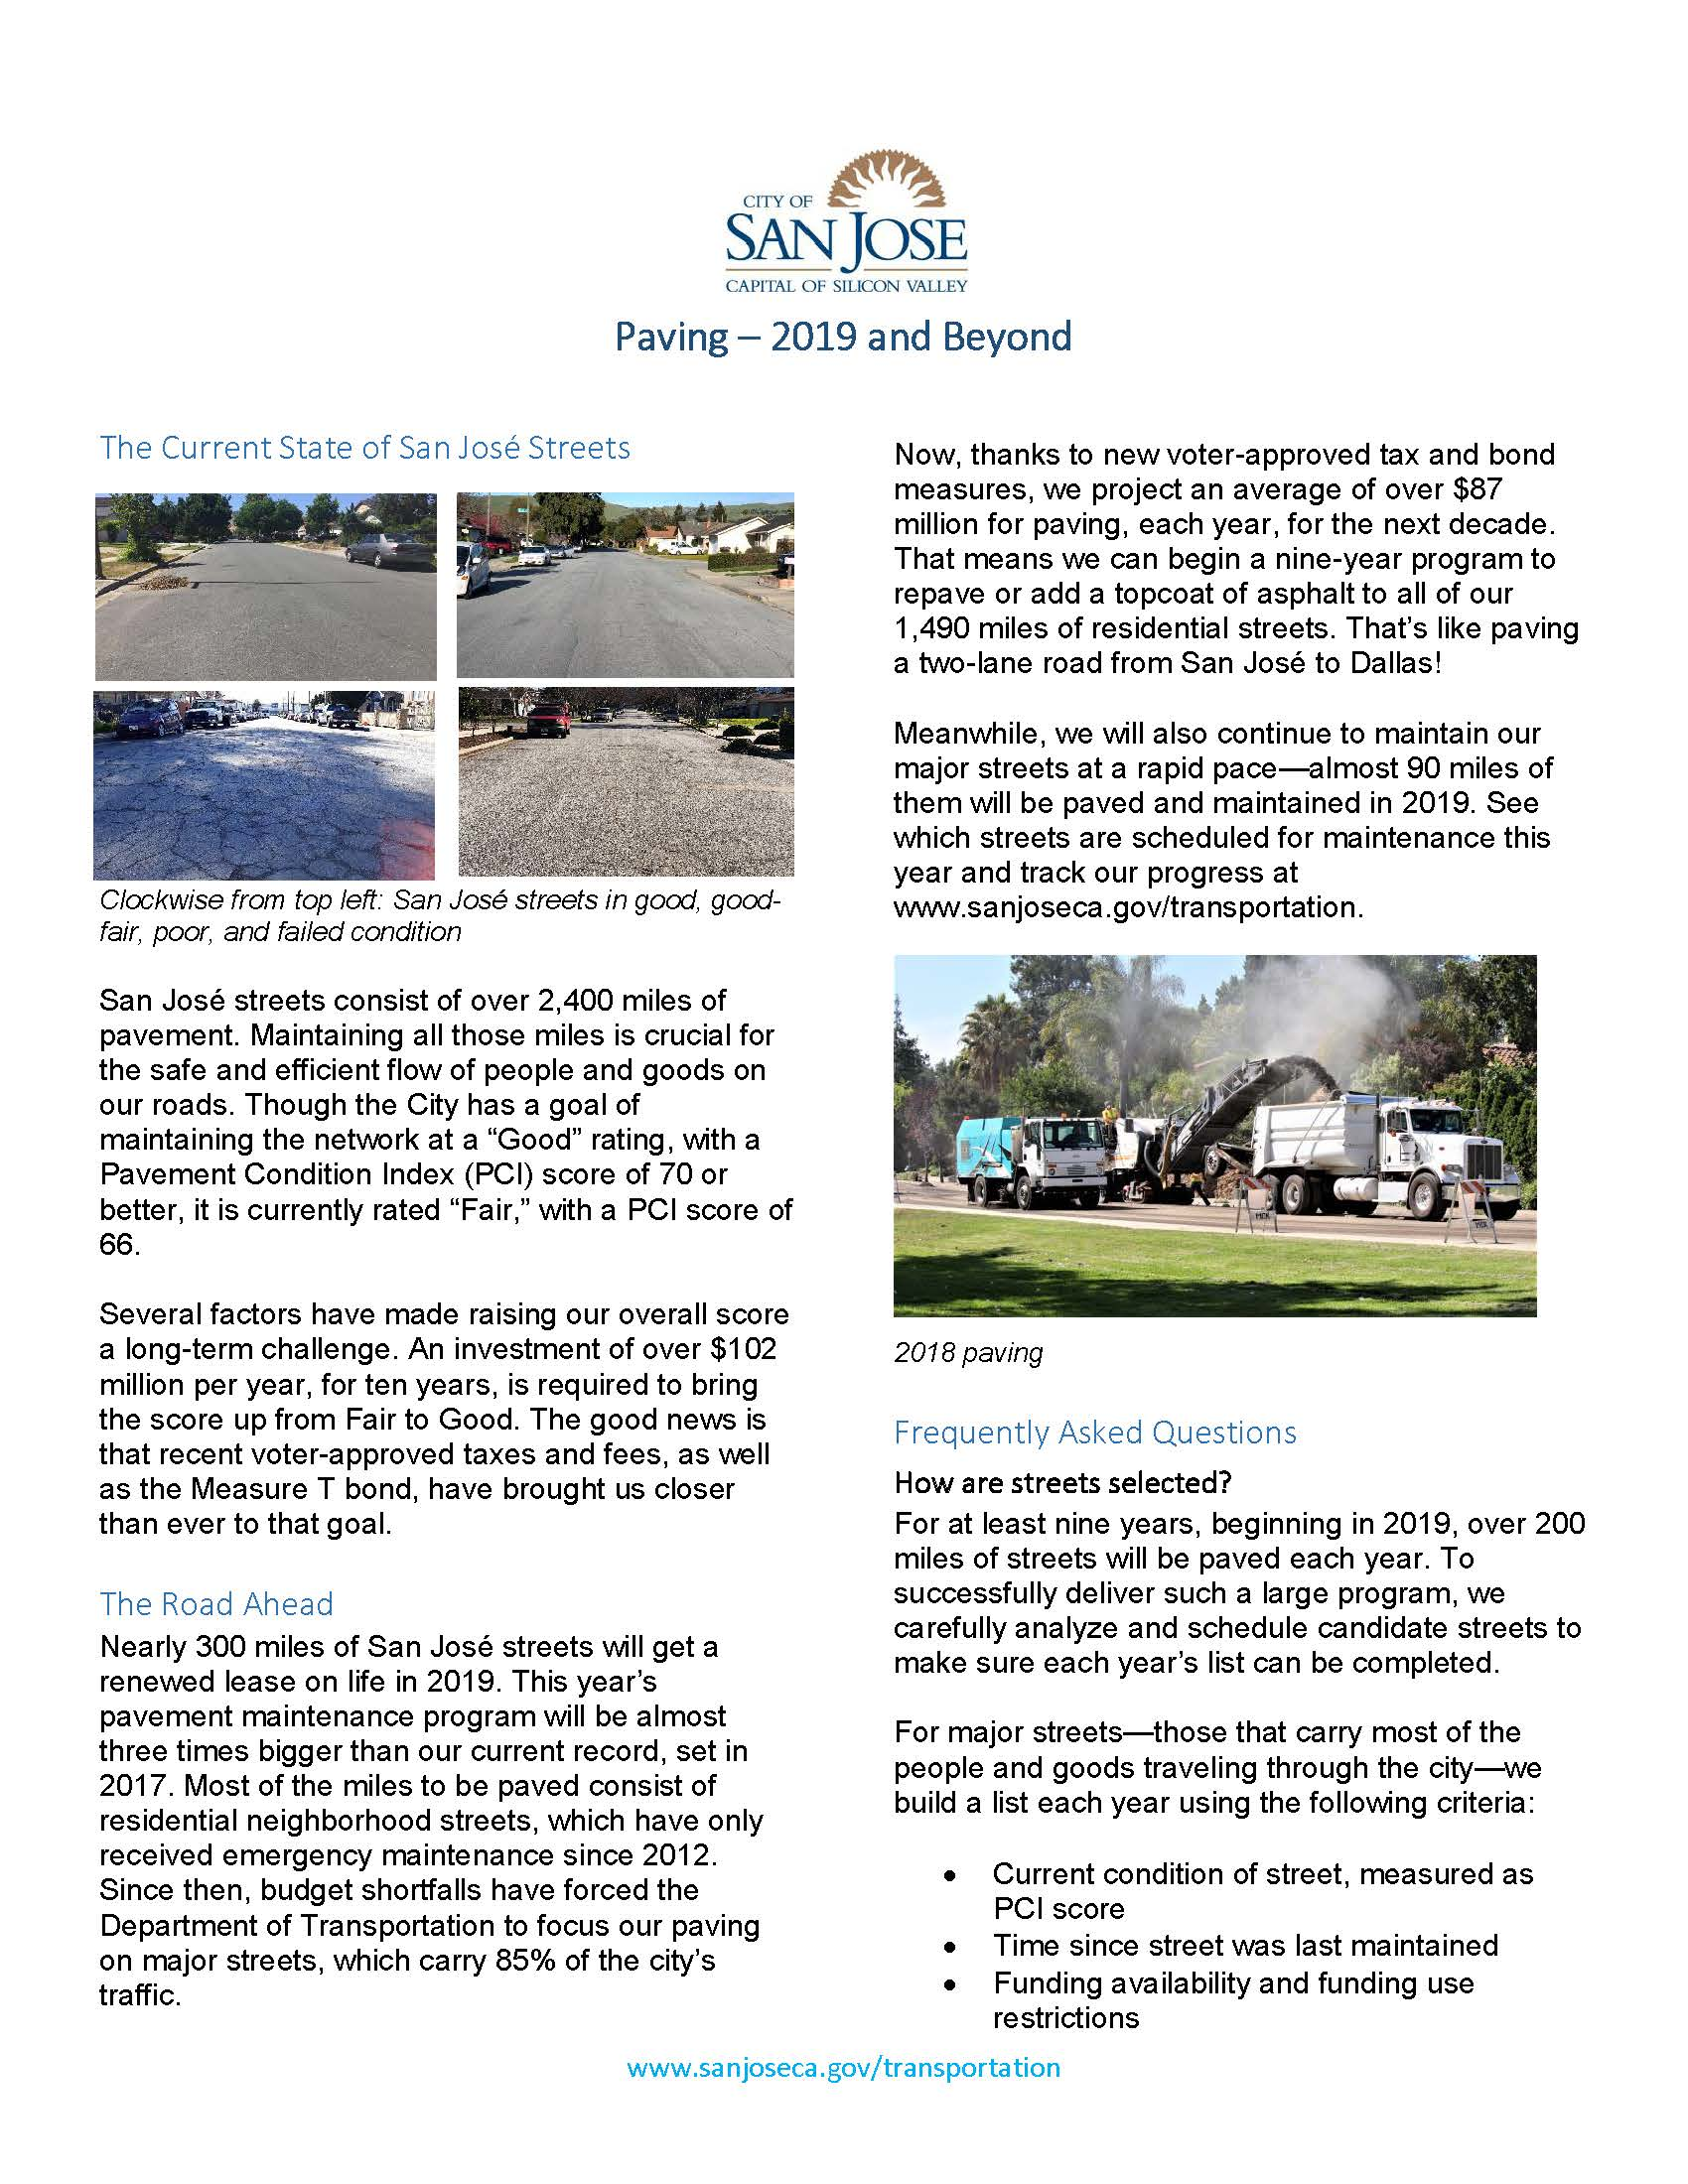 Pavement maintenance explainer 2019 Final_Page_1